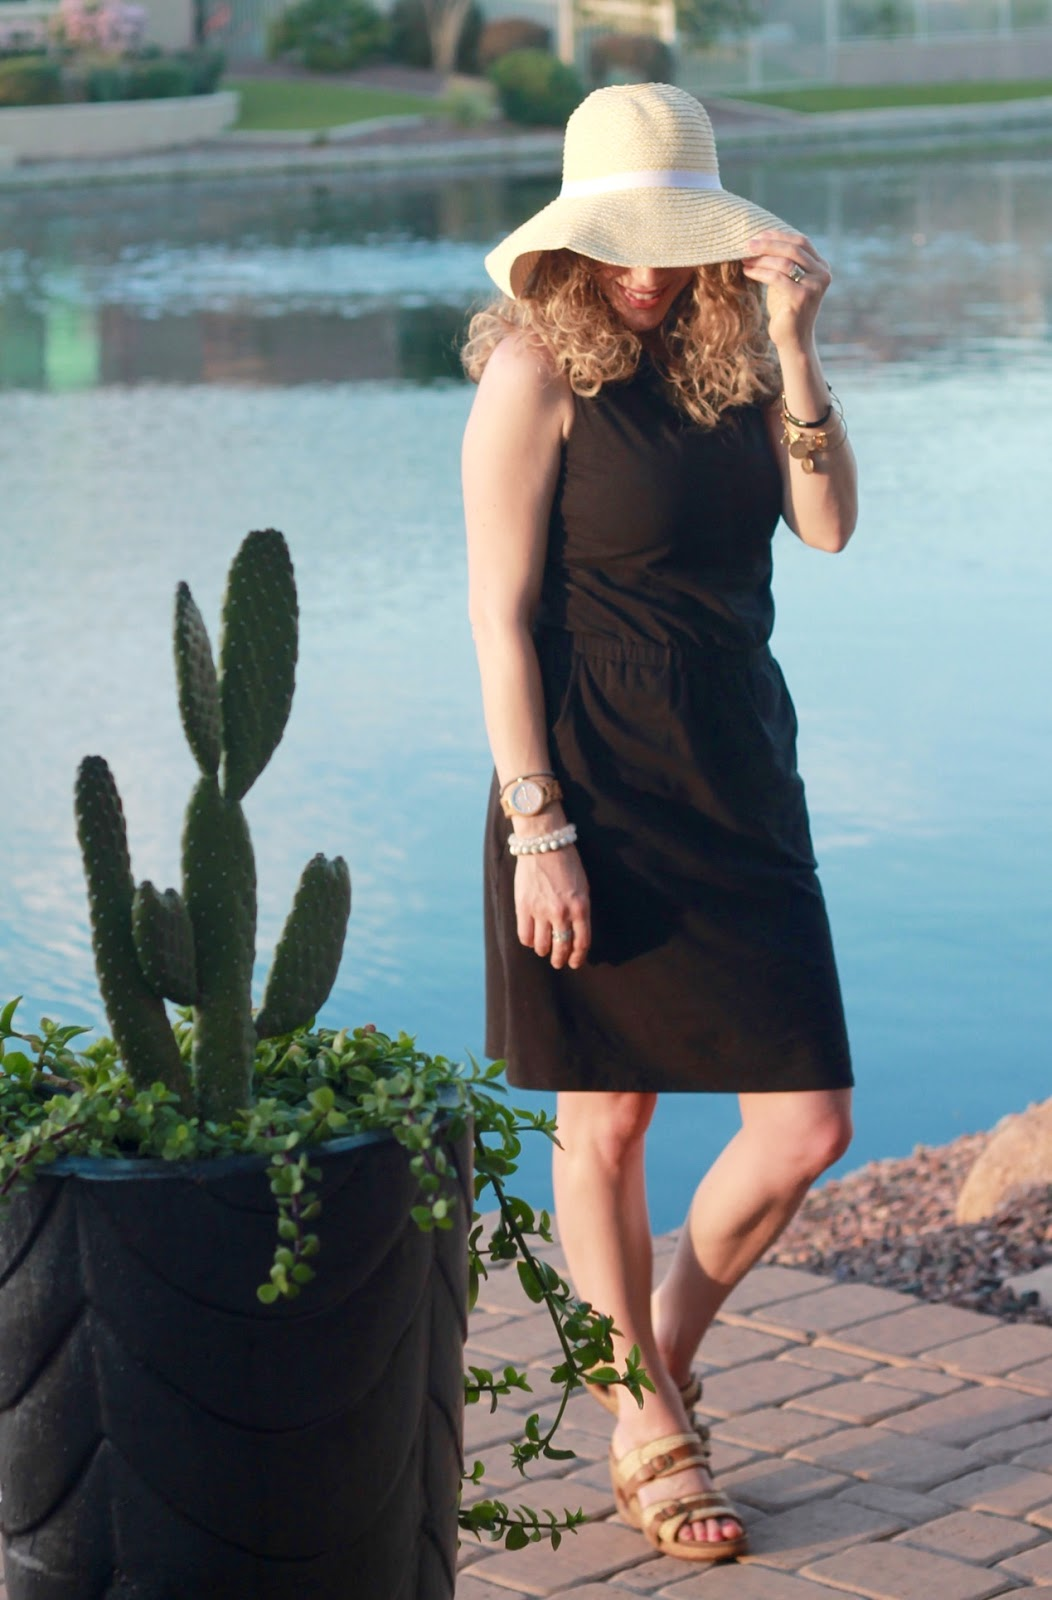 Aventura black avondale dress, black dress for travel, packable sun hat, wedges